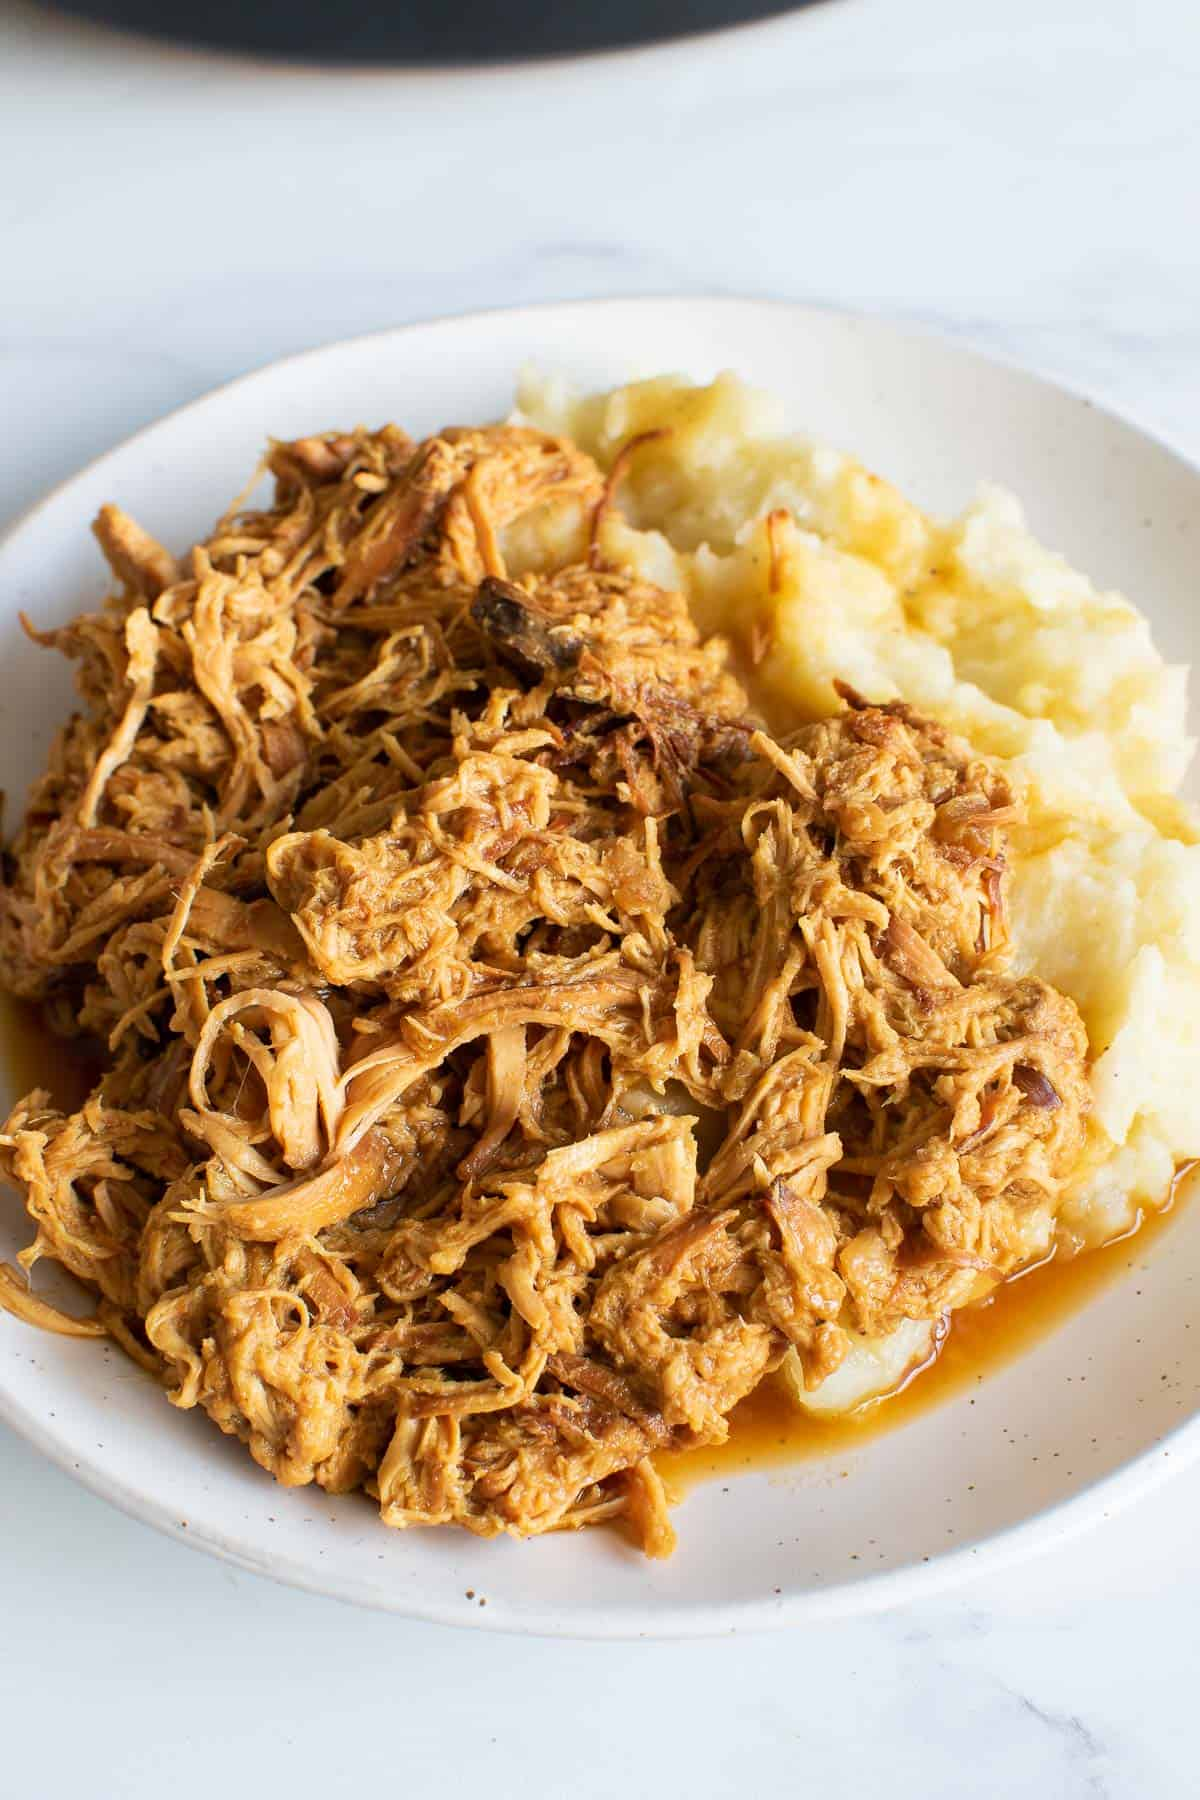 Shredded honey mustard chicken with mashed potatoes.